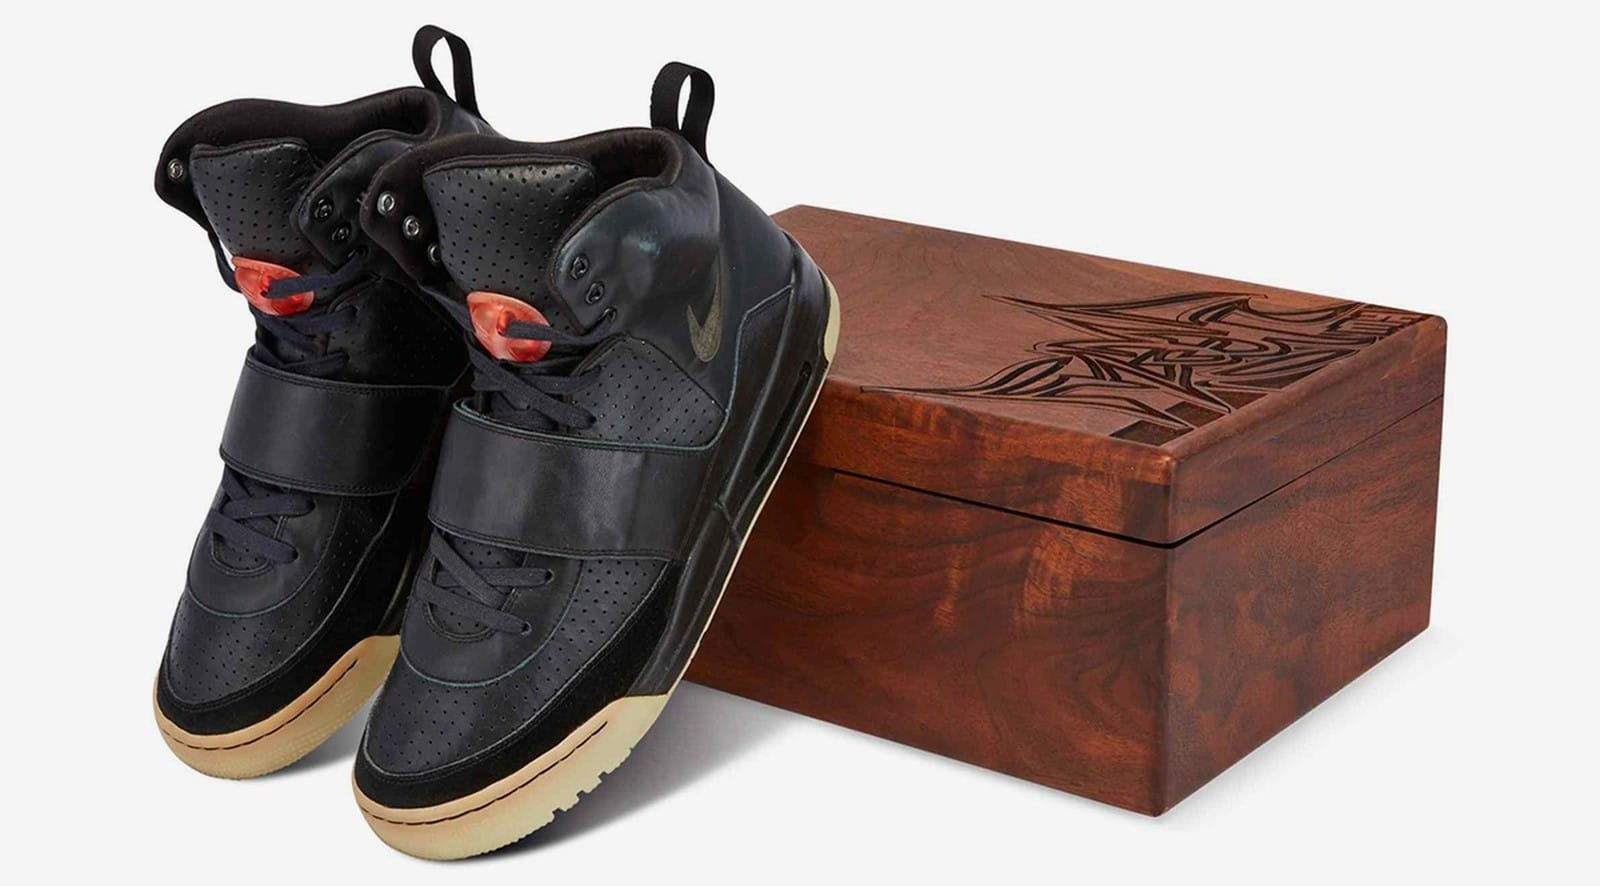 Kanye West's Nike Air Yeezy Prototype is going on sale for over $1 million 18